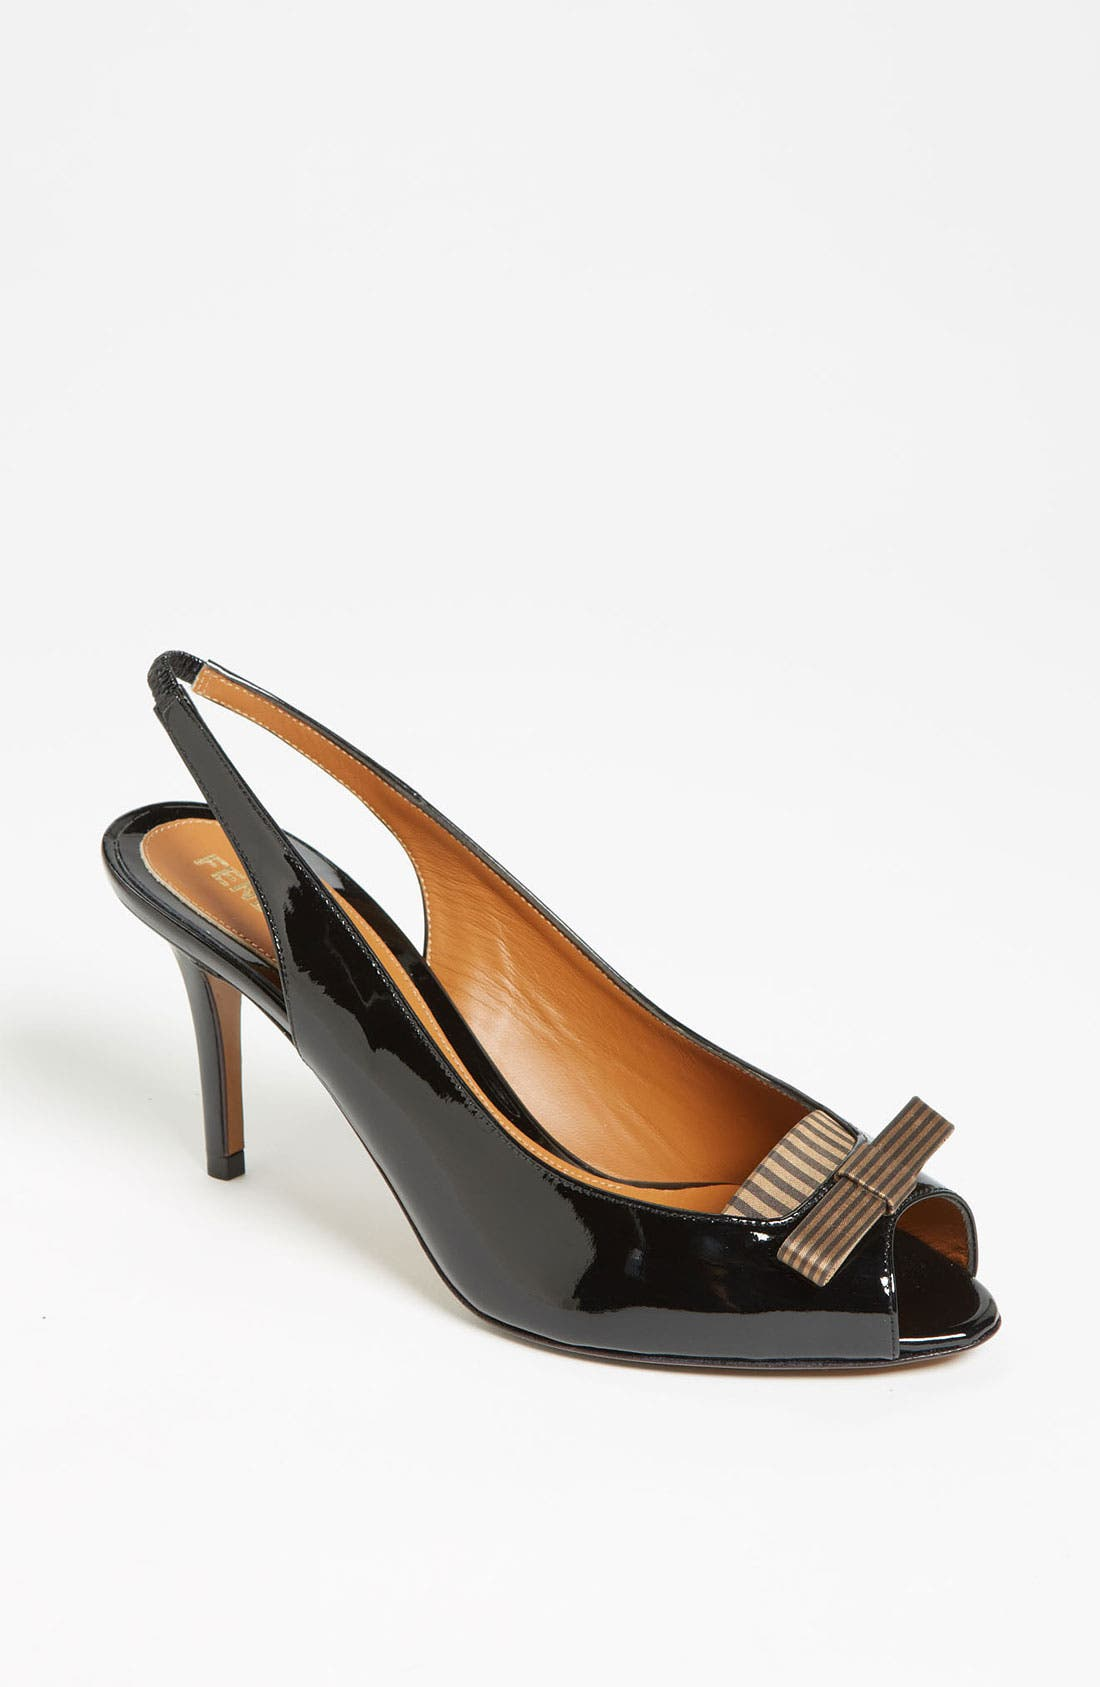 Main Image - Fendi 'Charleston' Slingback Pump